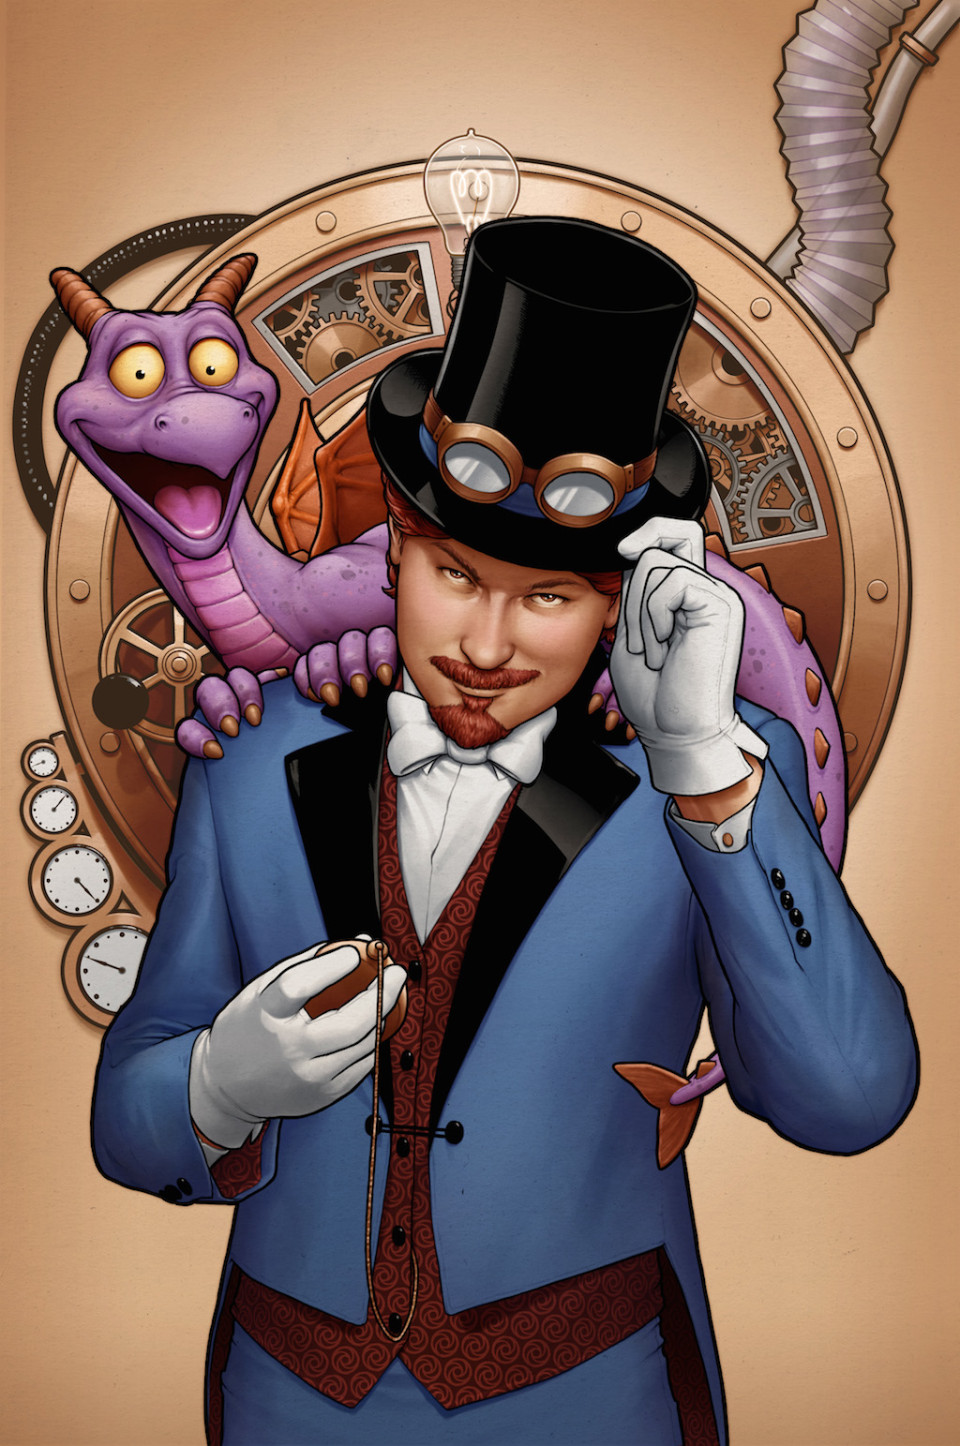 Cover of Figment #1.